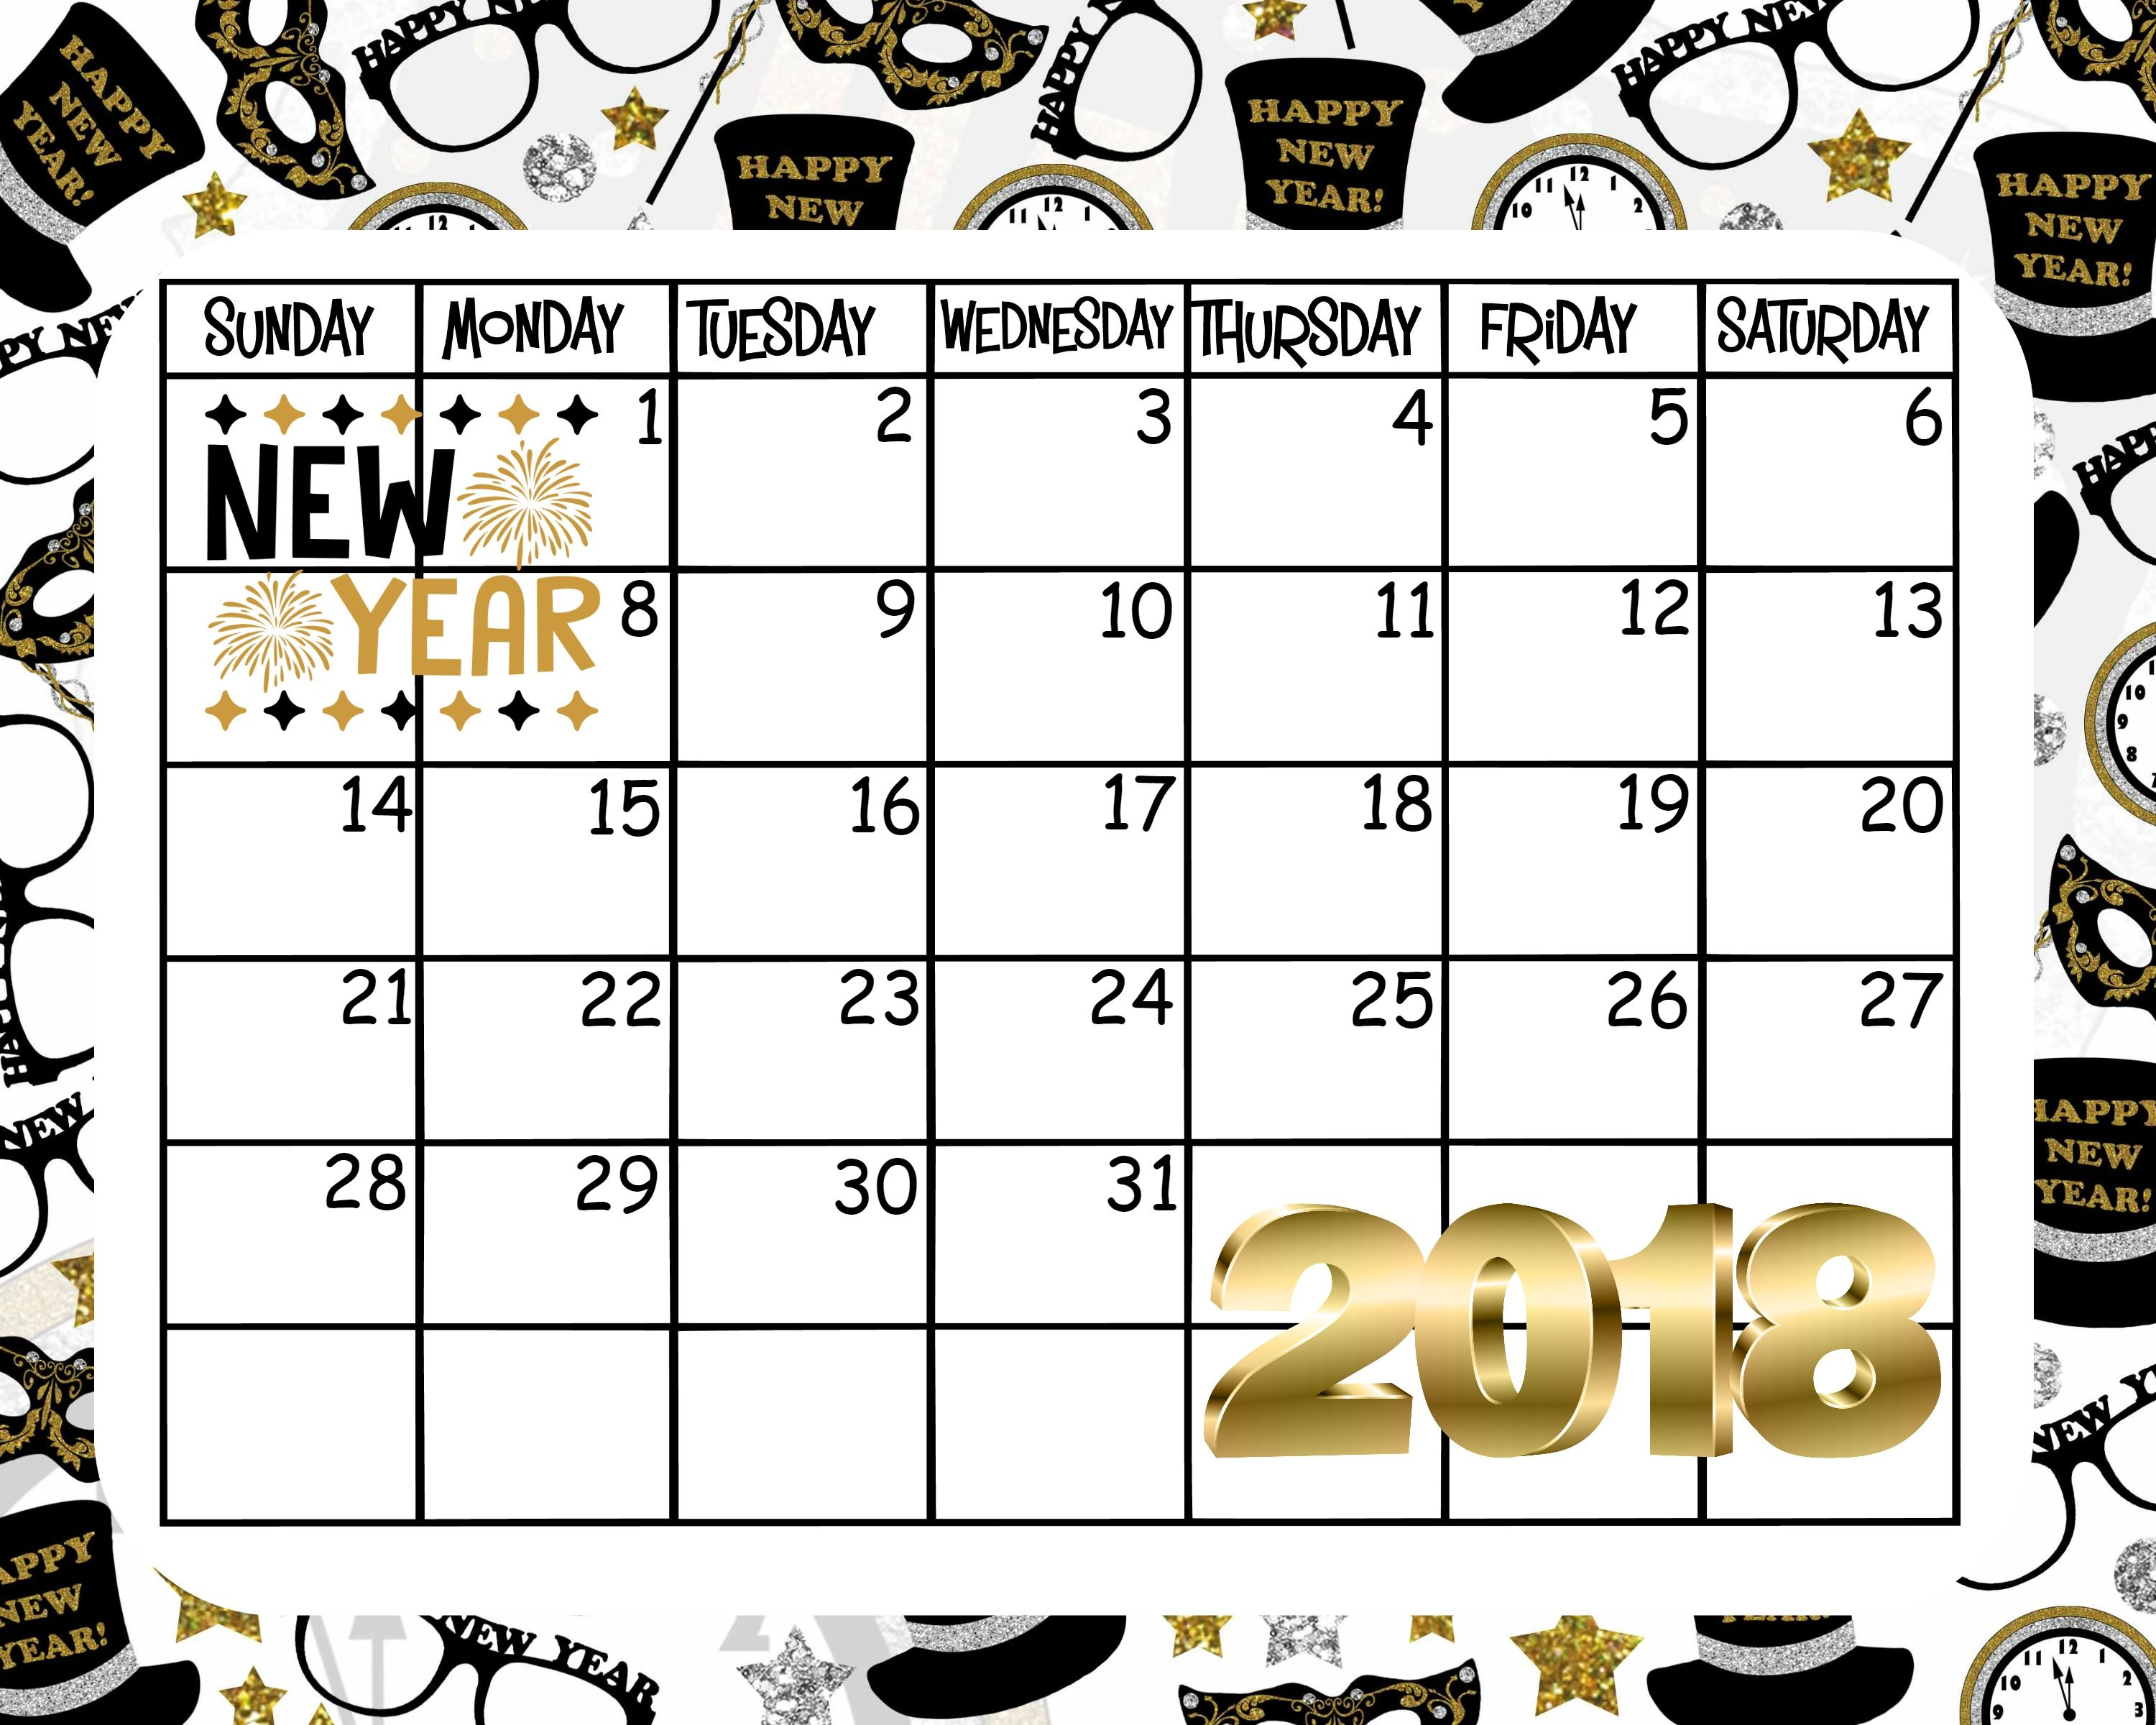 Free Printable January Calendar Happy New Year